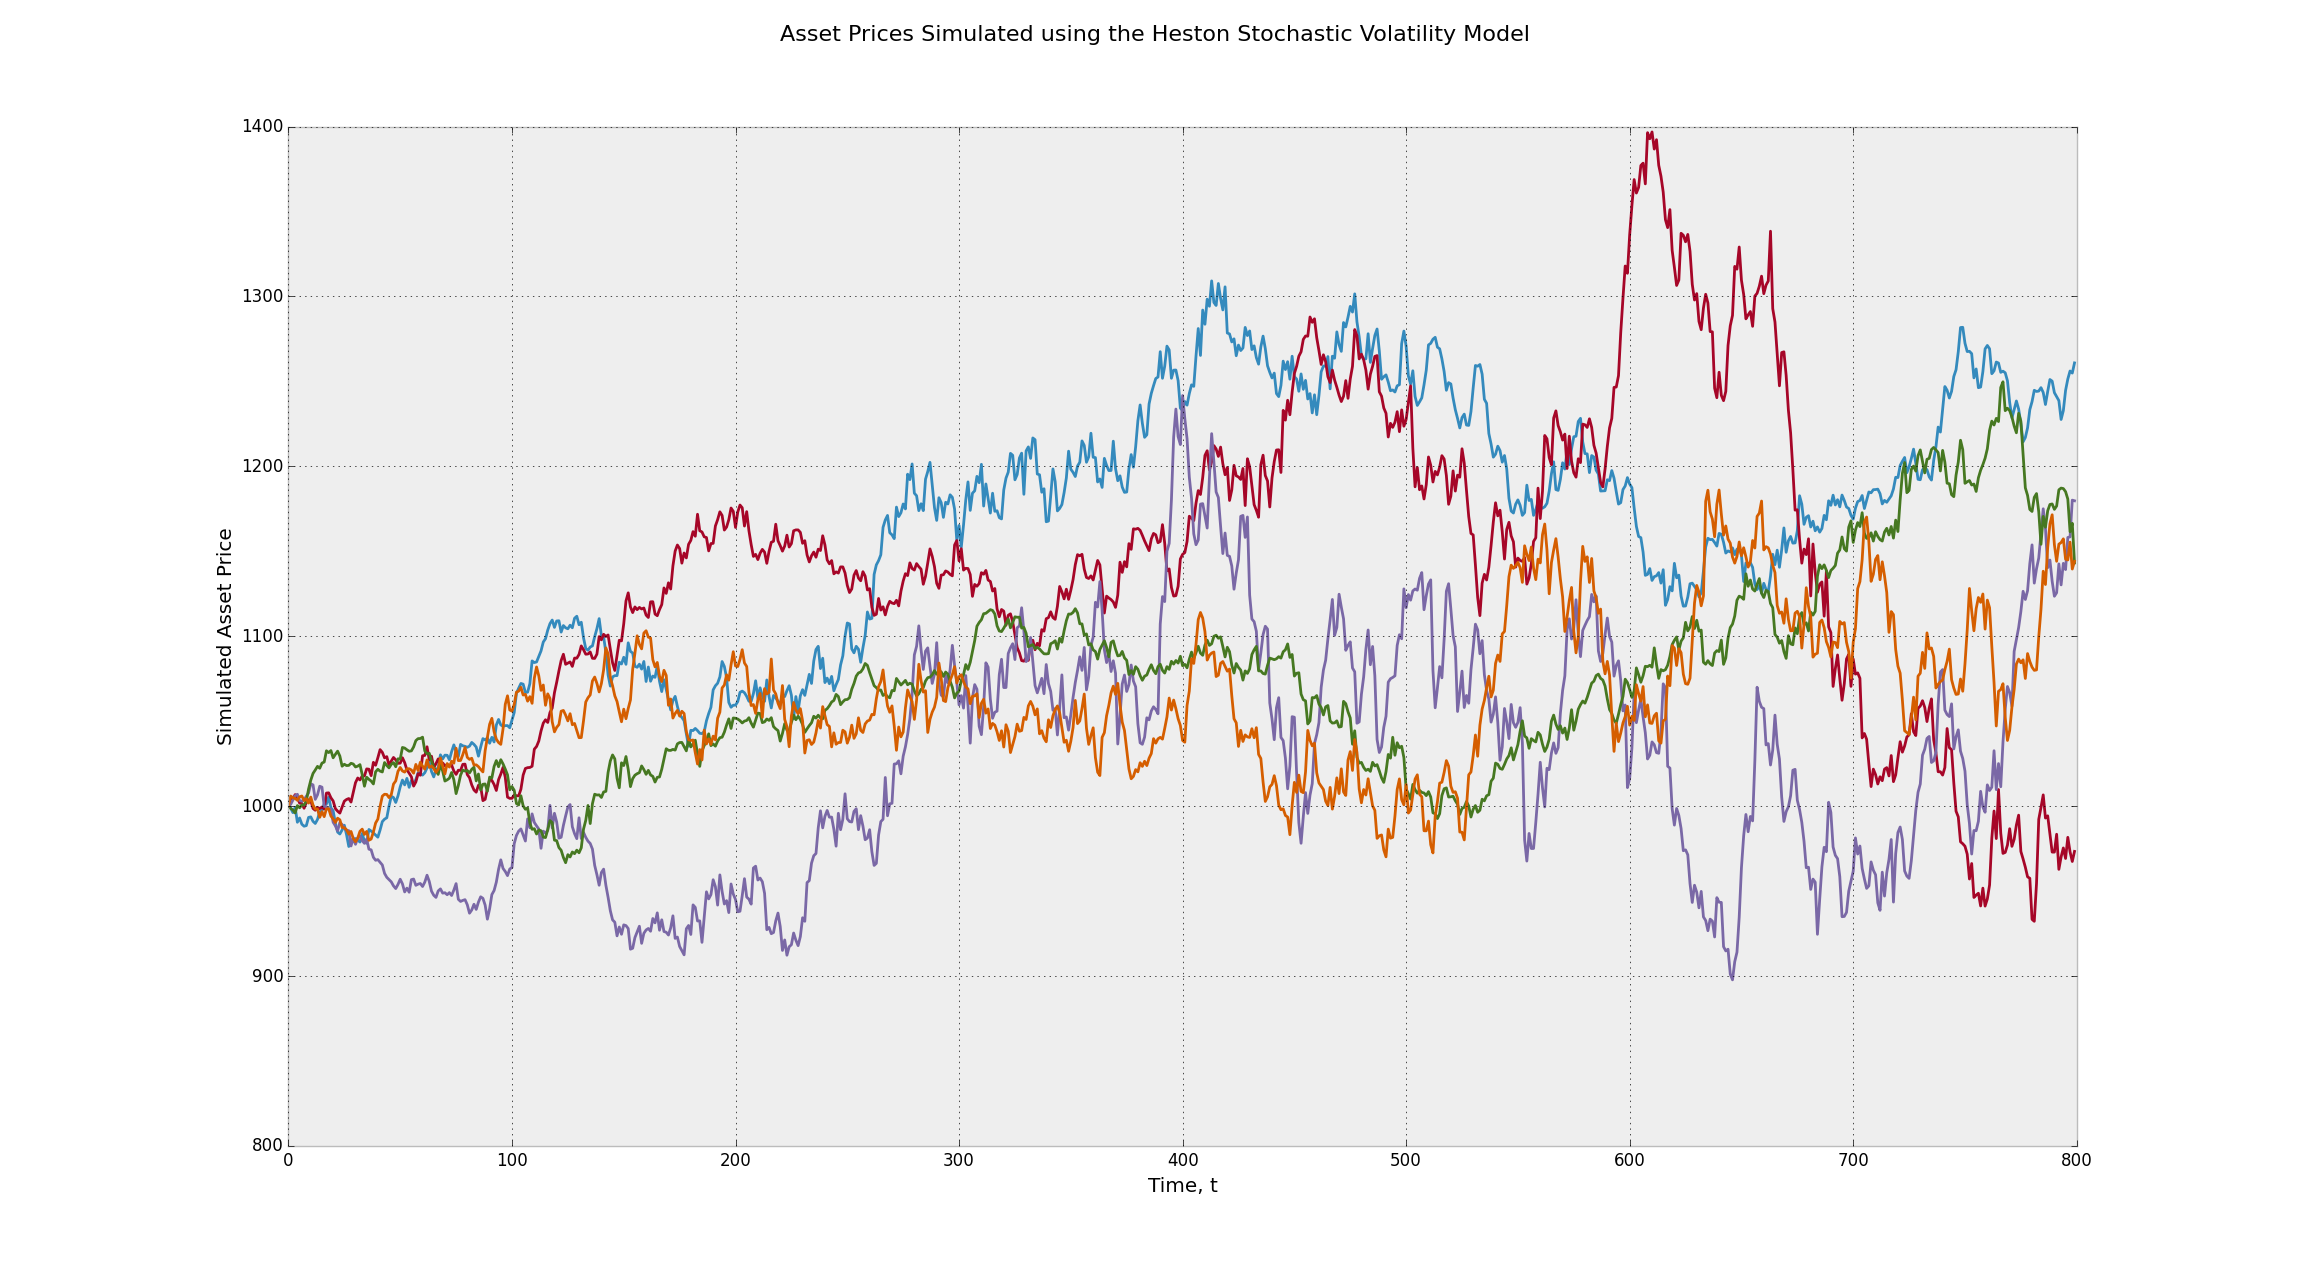 Asset Prices Simulated using the Heston Stochastic Volatility Geometric Brownian Motion Stochastic Process